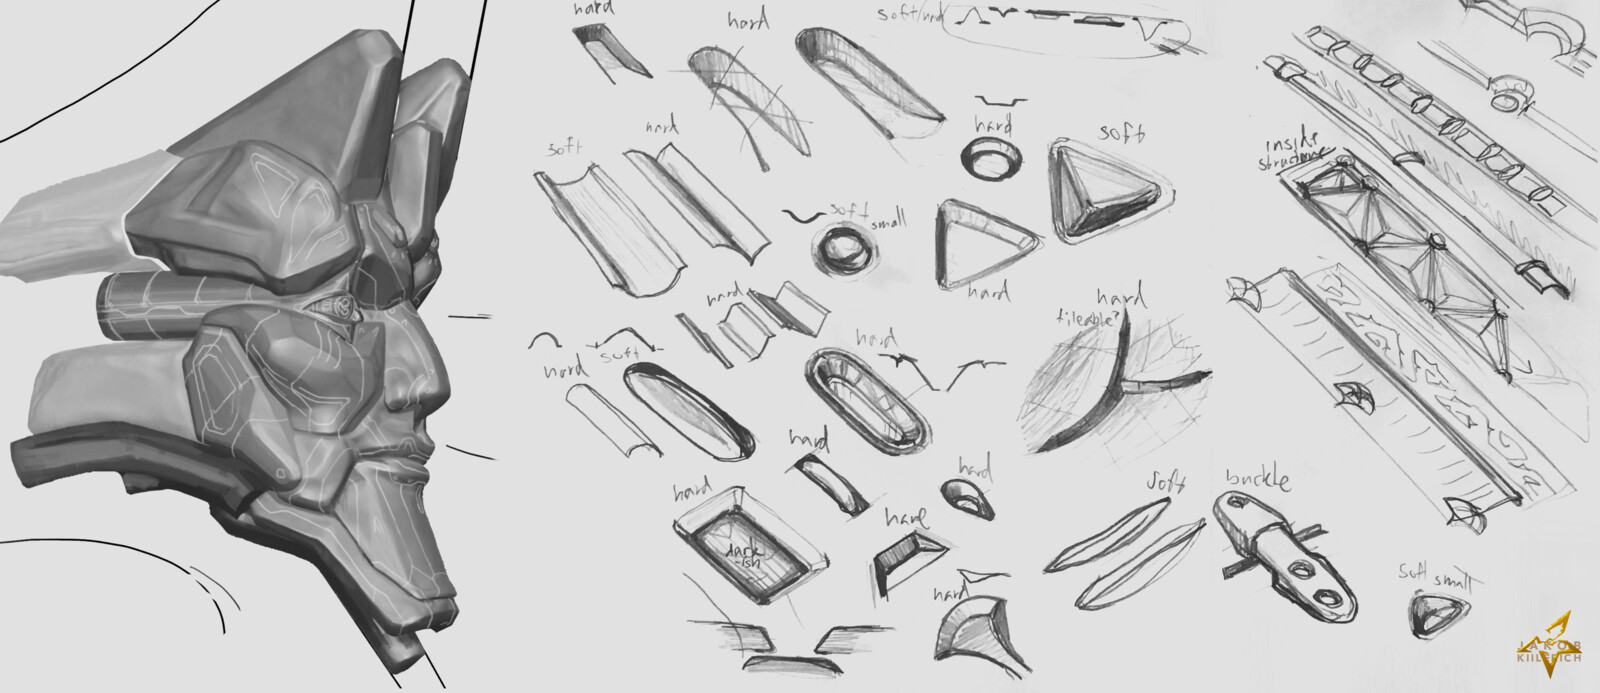 Decal sketches. Many weren't put to use on the final surface,